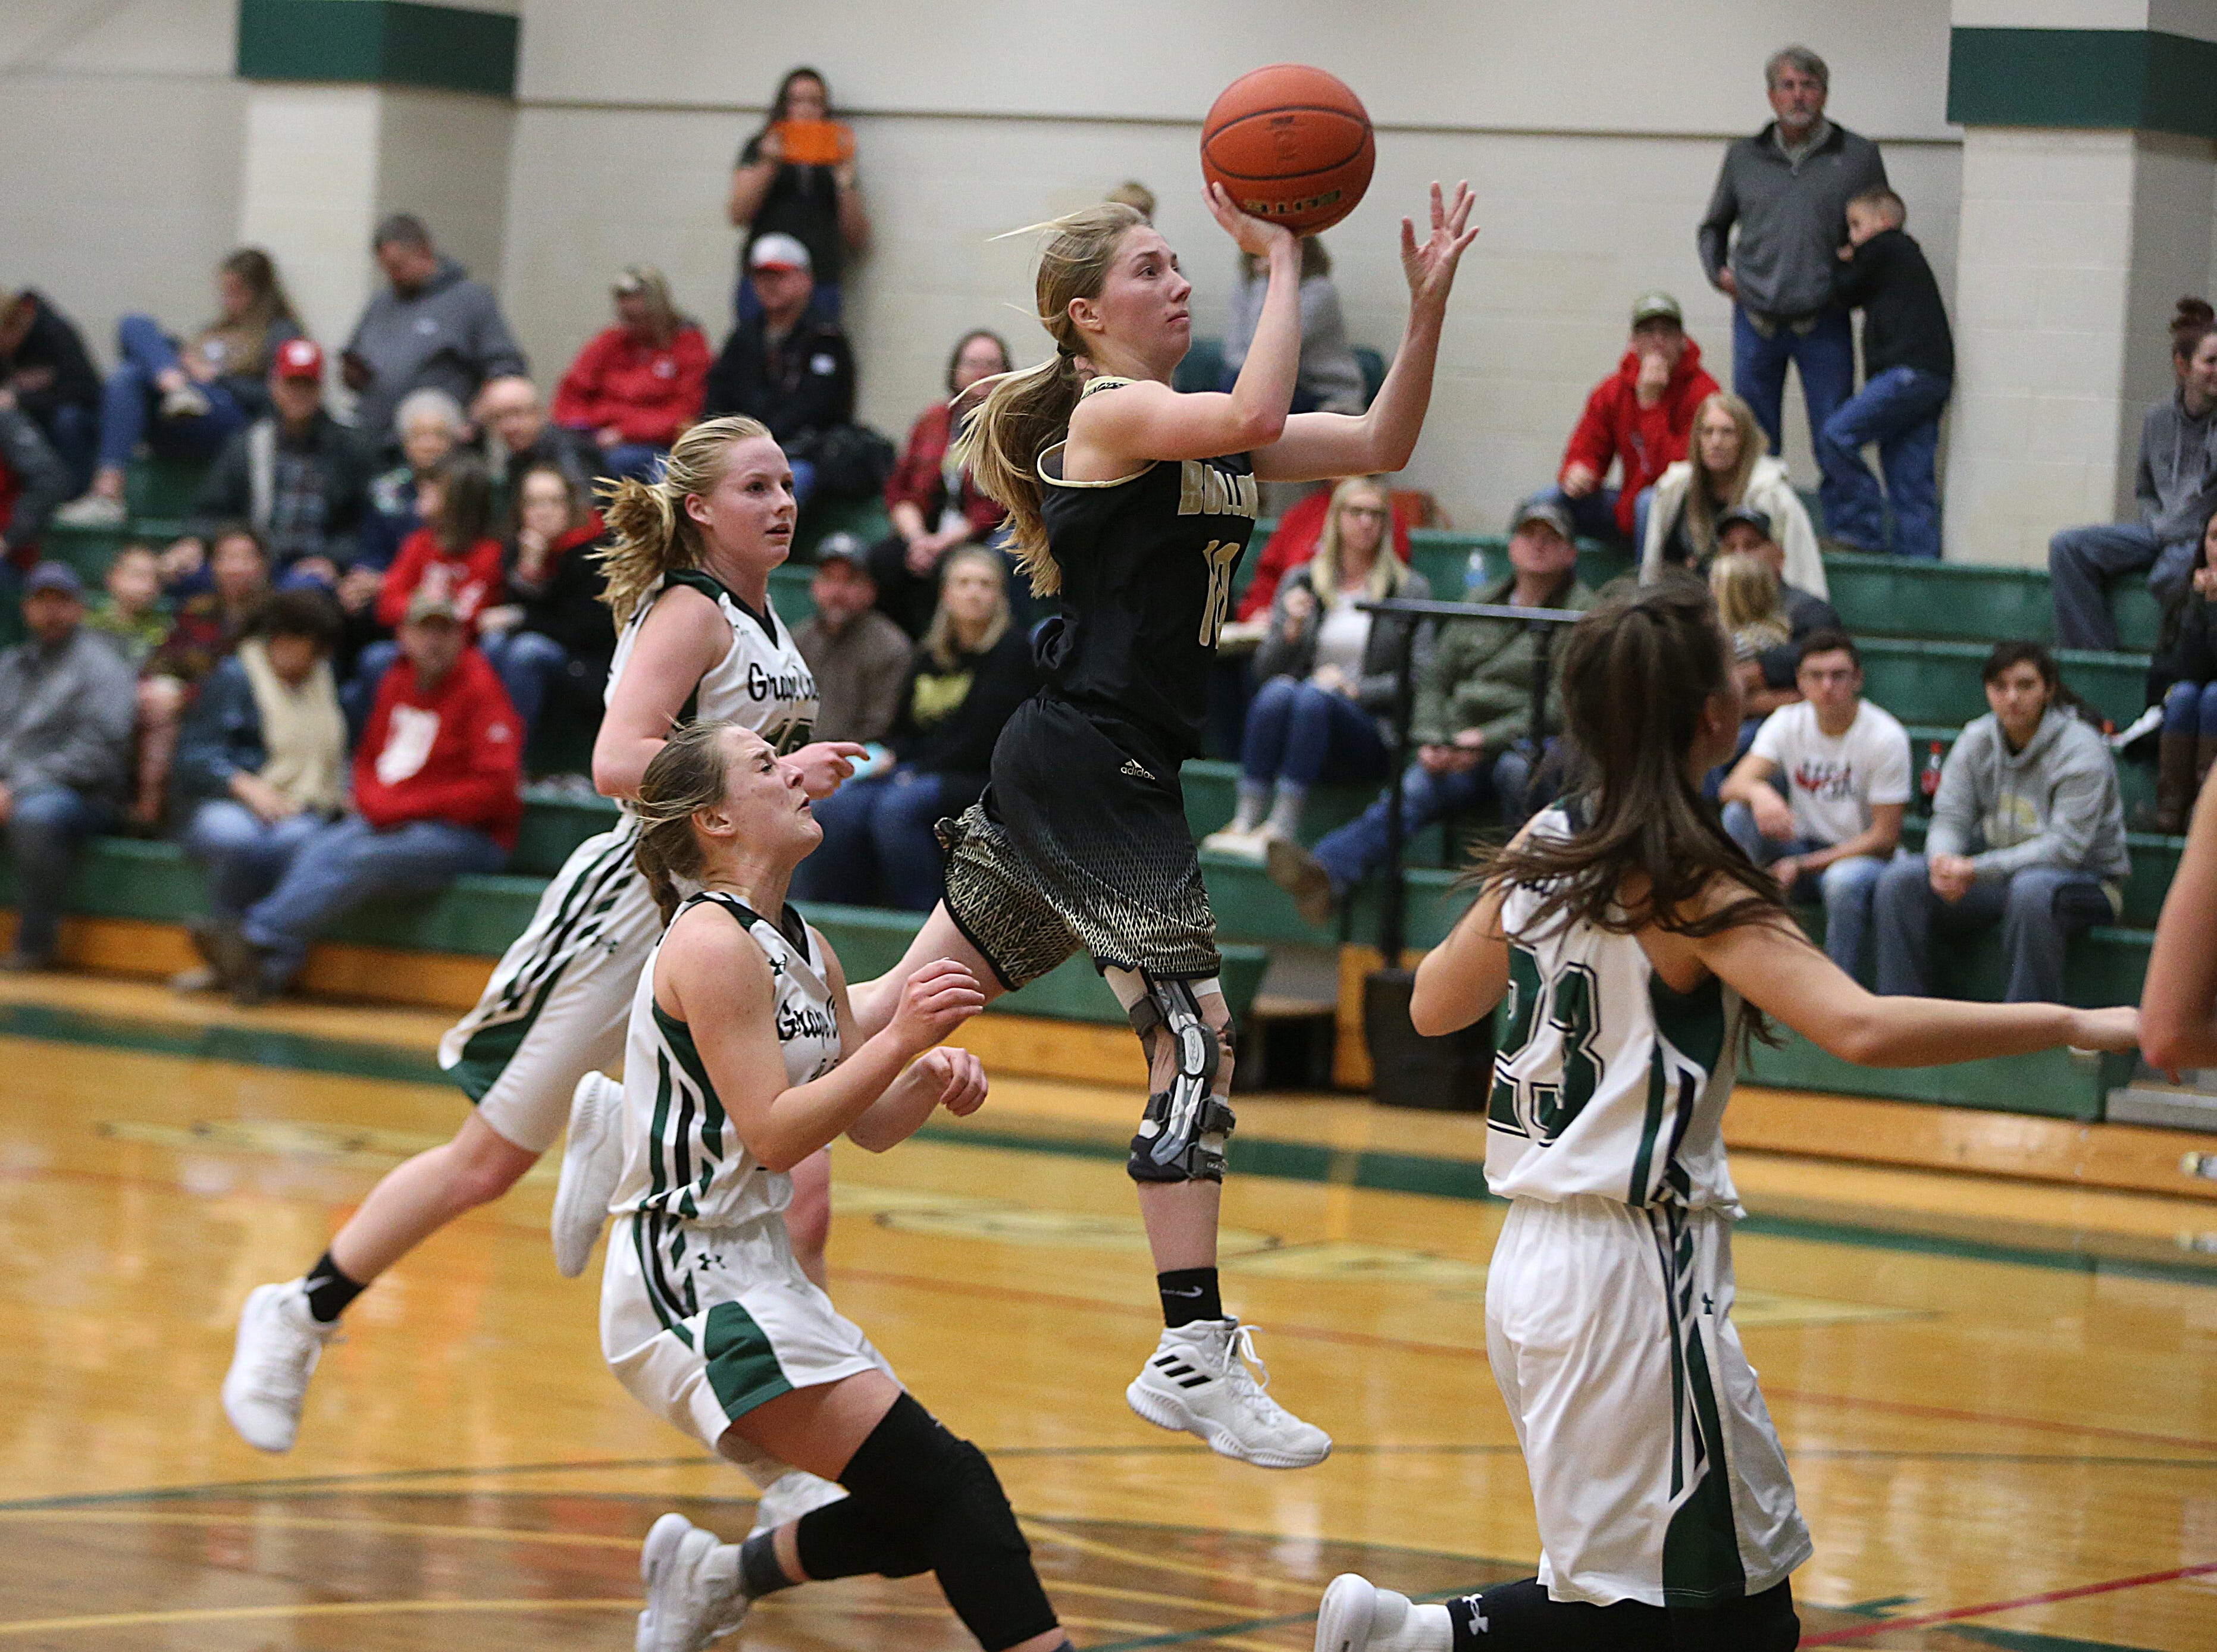 Brady's Madi Boyd (#10) jumps in the air to make a shot Friday, Dec. 14, 2018 during the Bulldog's game against Grape Creek. Brady won 48 to 28.